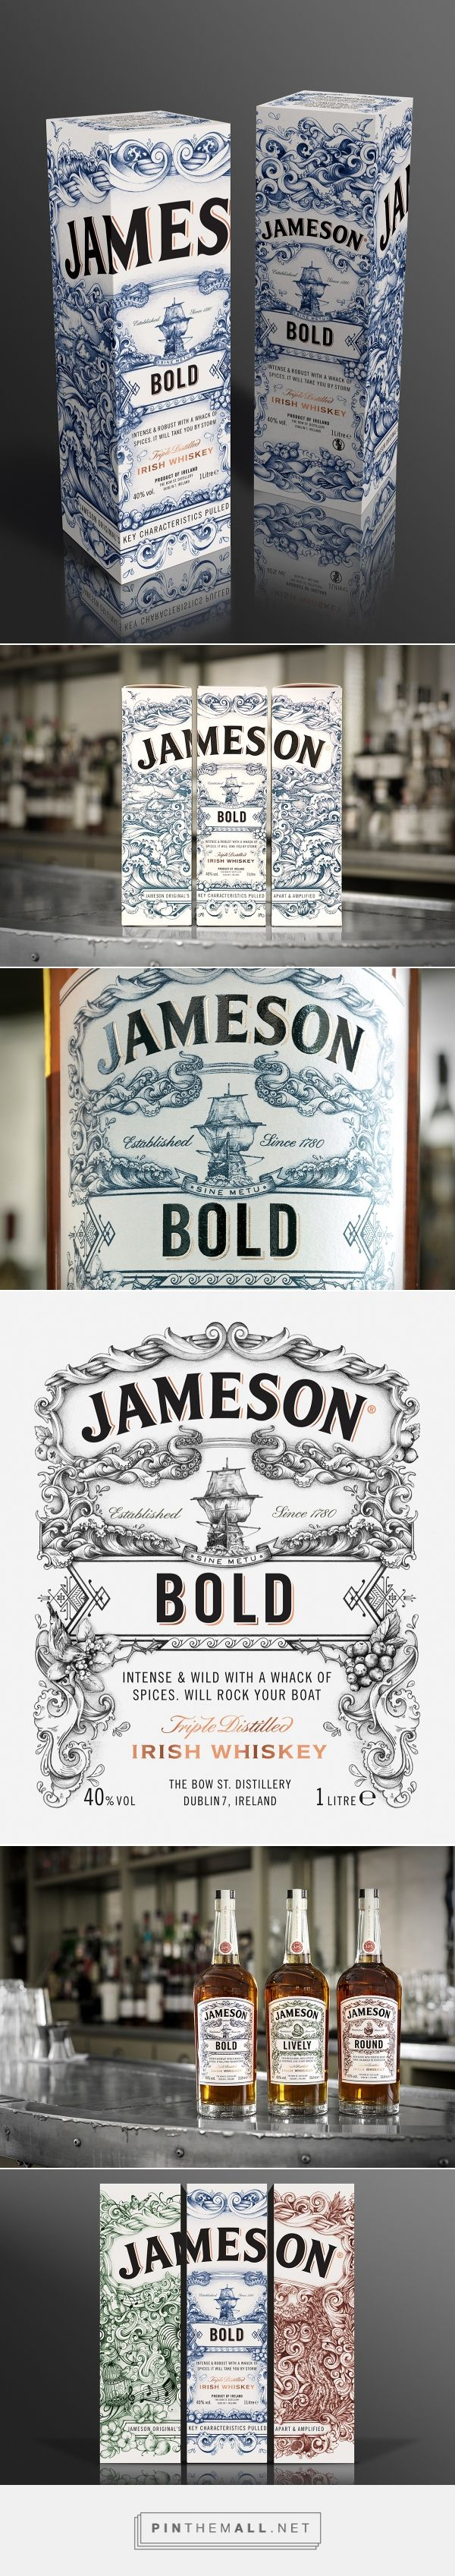 Jameson Whiskey - Deconstructed Series 'BOLD'